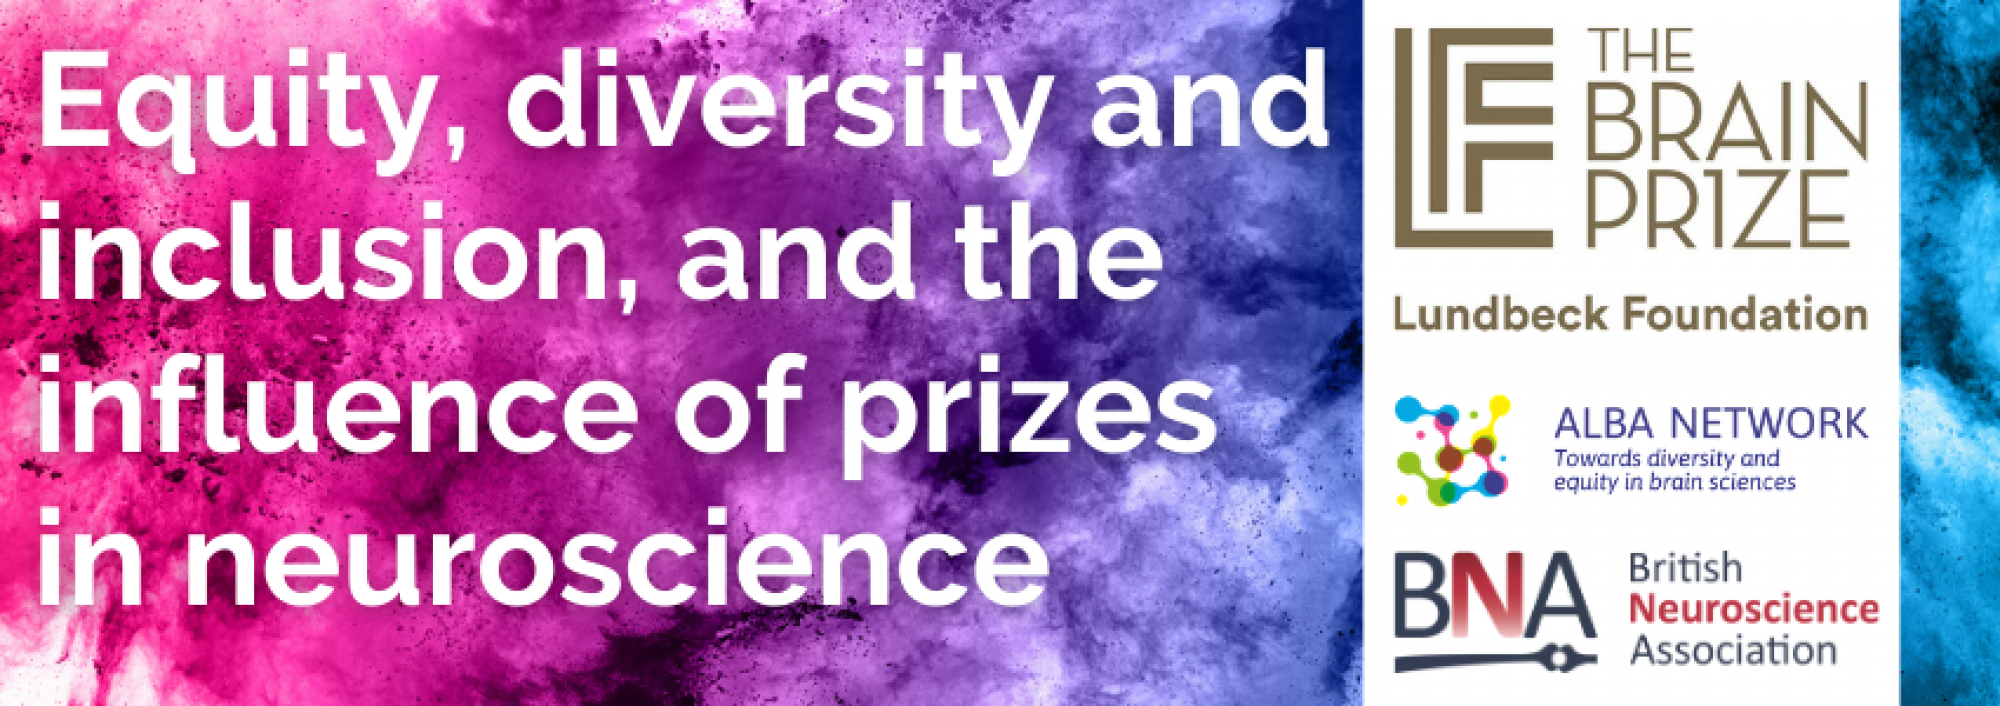 equity, diversity and inclusion, and the influence of prizes in neuroscience